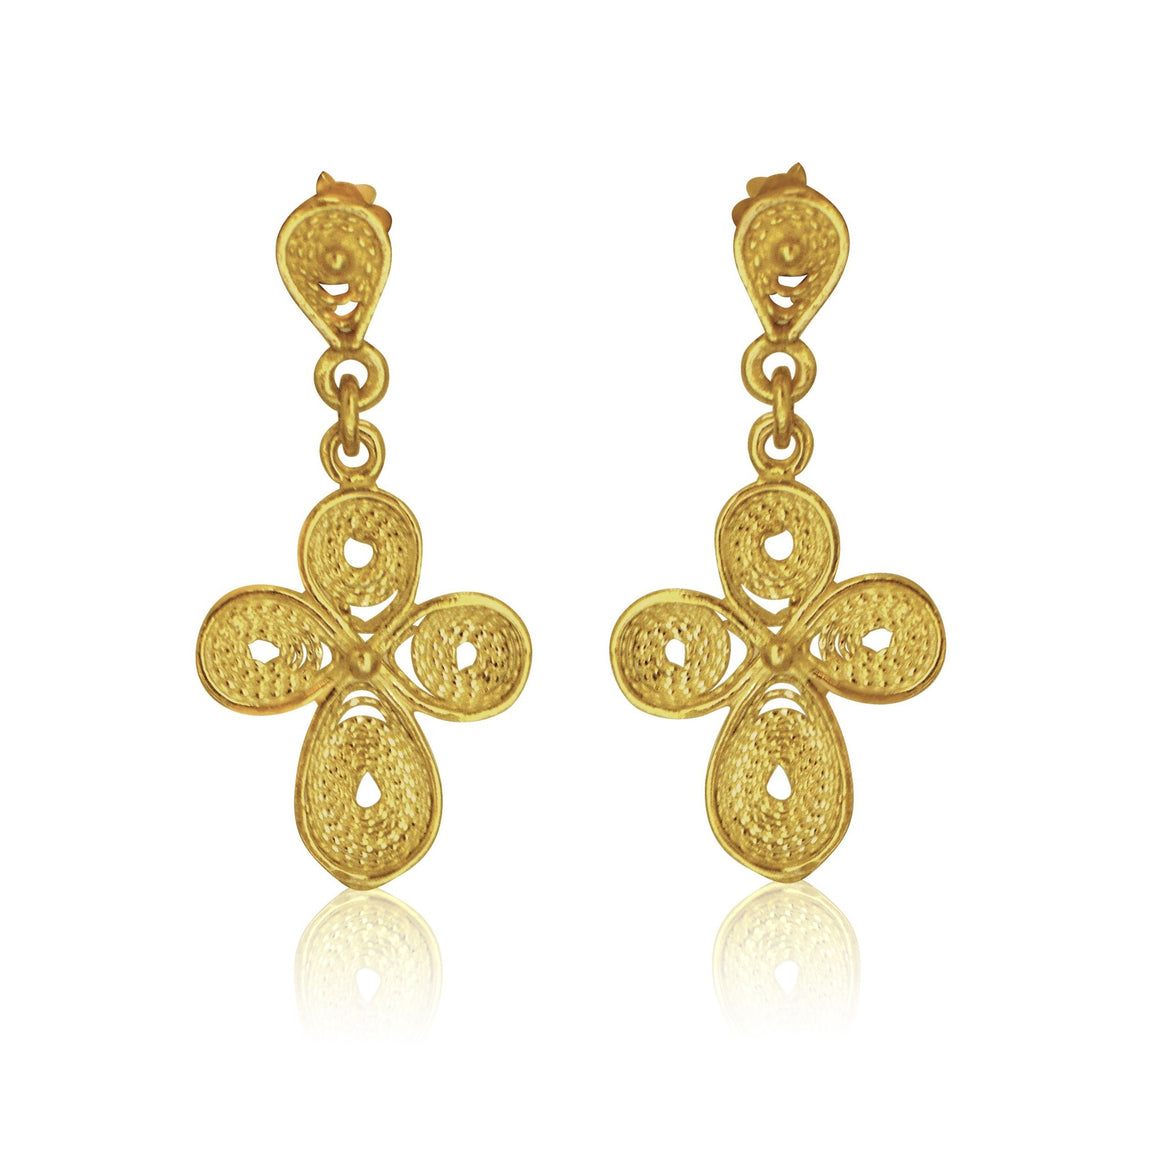 'Stavroudakia' Earrings